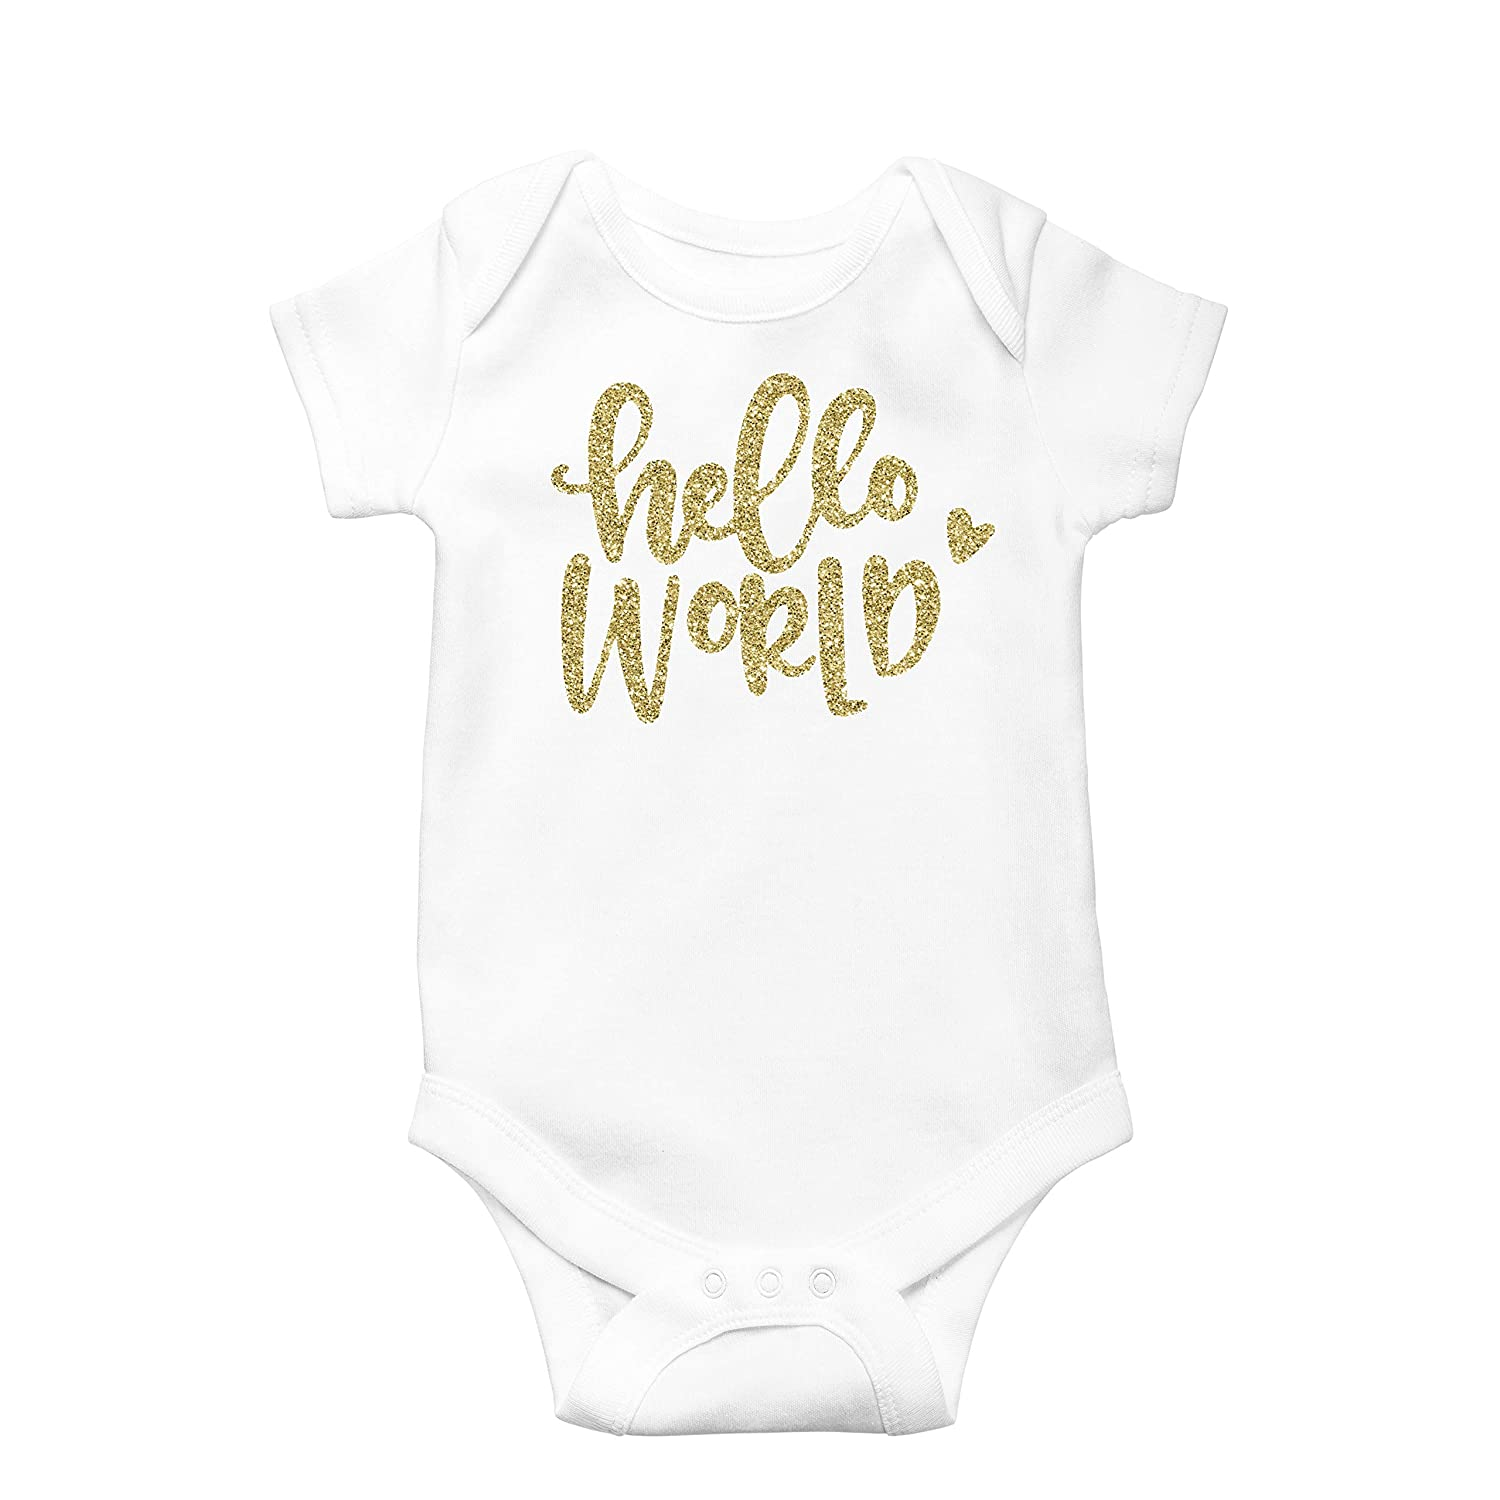 64c40263c996 Amazon.com  Newborn Take Home Bodysuit Hello World Girl Coming Home Outfit  Gold  Clothing